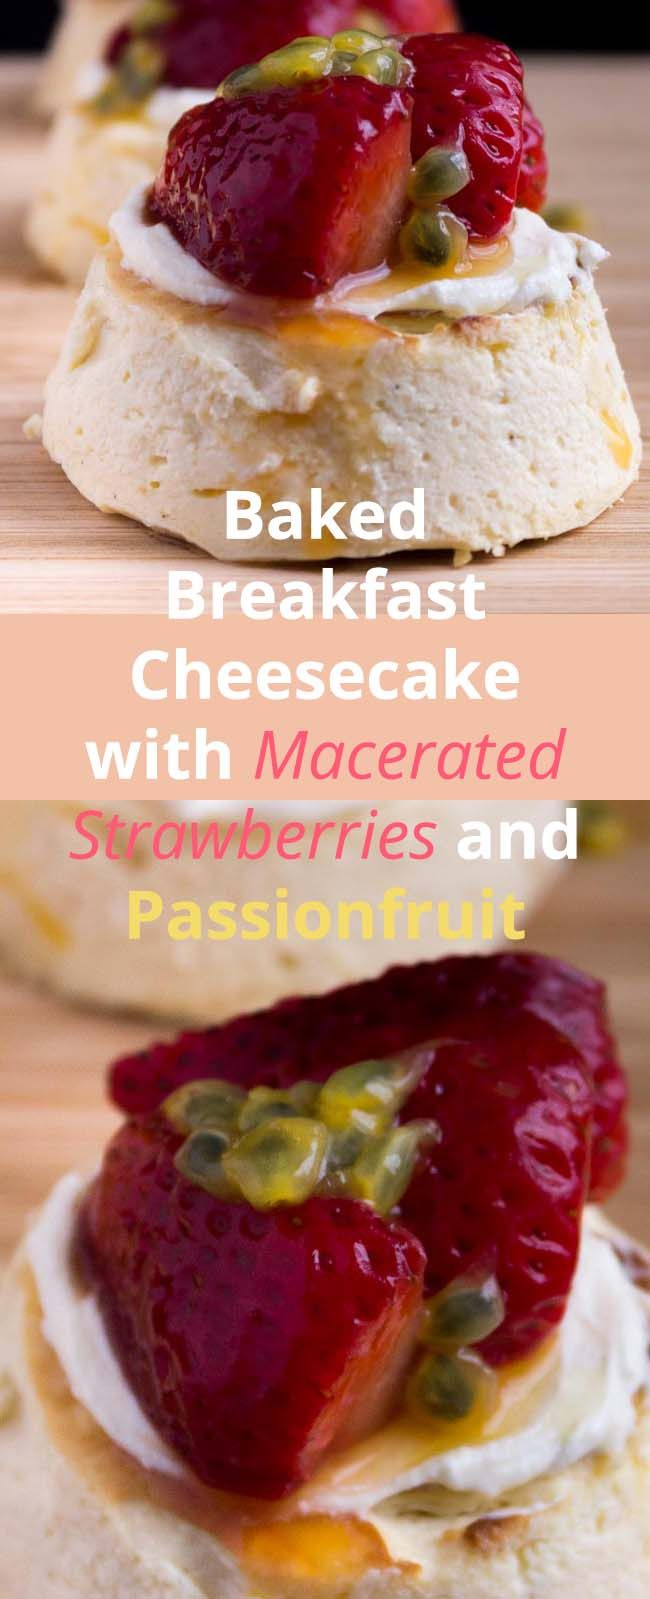 BAKED BREAKFAST CHEESECAKE WITH MACERATED STRAWBERRIES AND PASSIONFRUIT: When you really feel a need for dessert for breakfast.